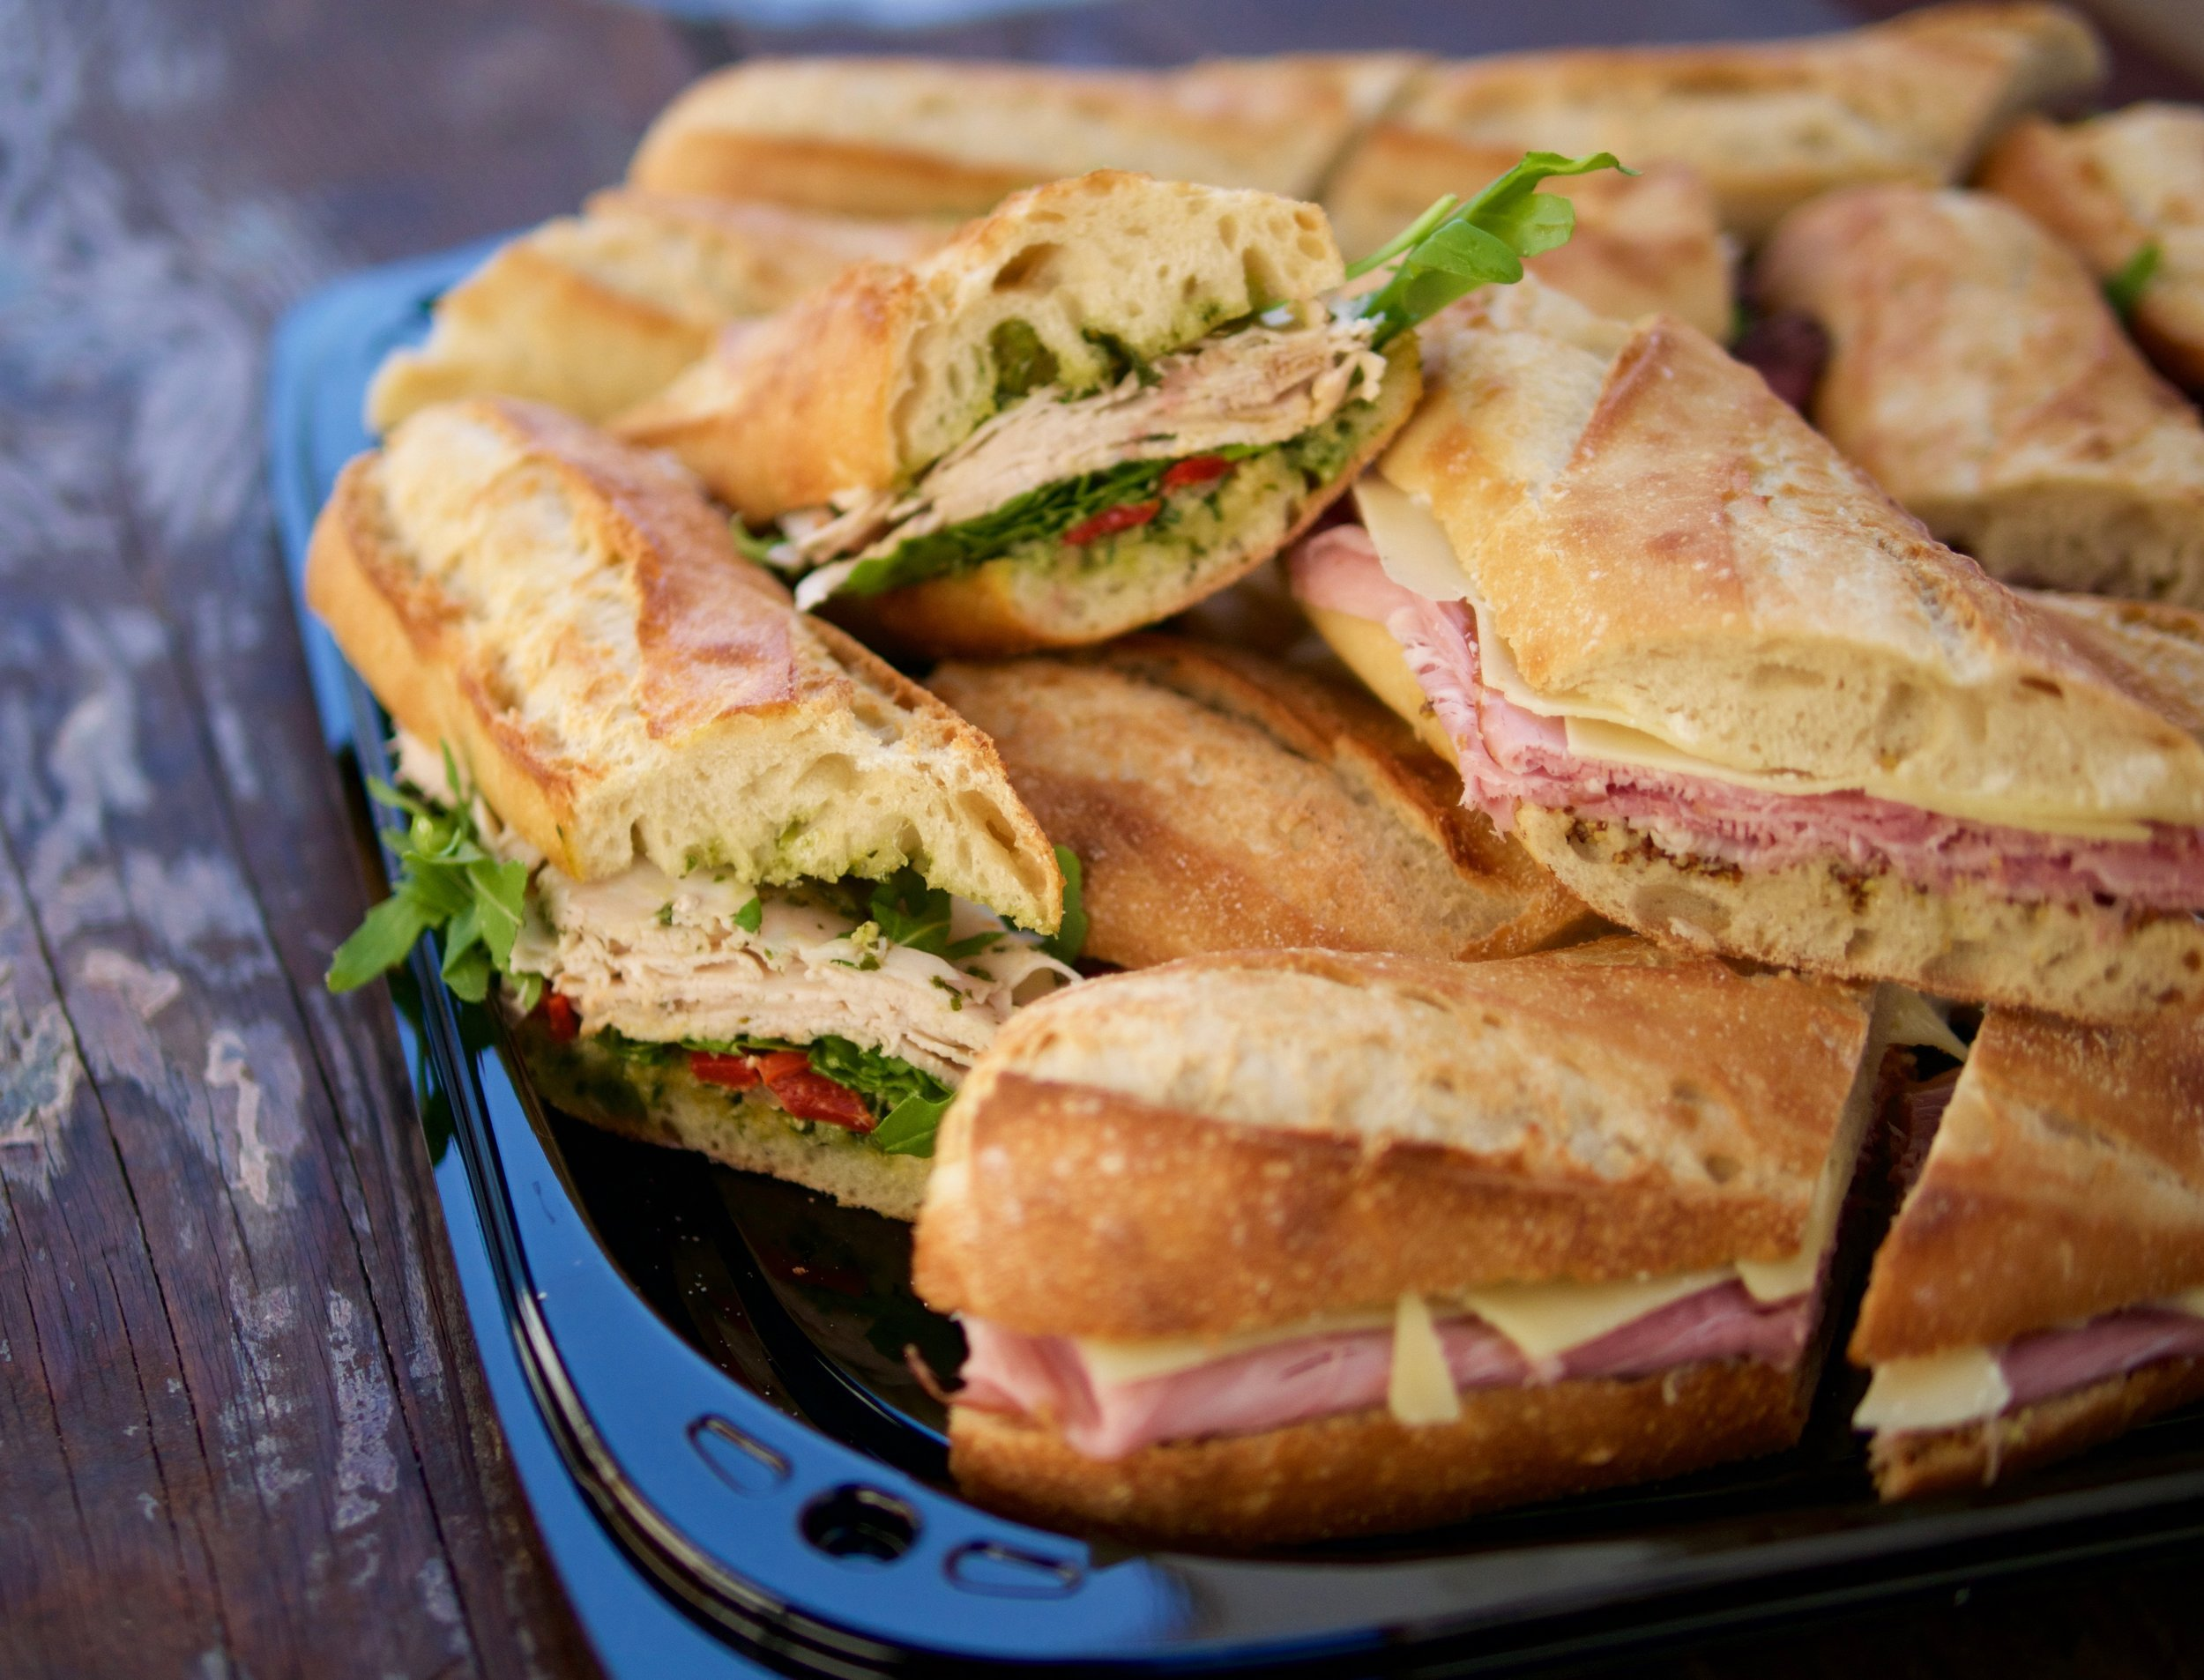 small sandwich platter with European style baguette sandwiches